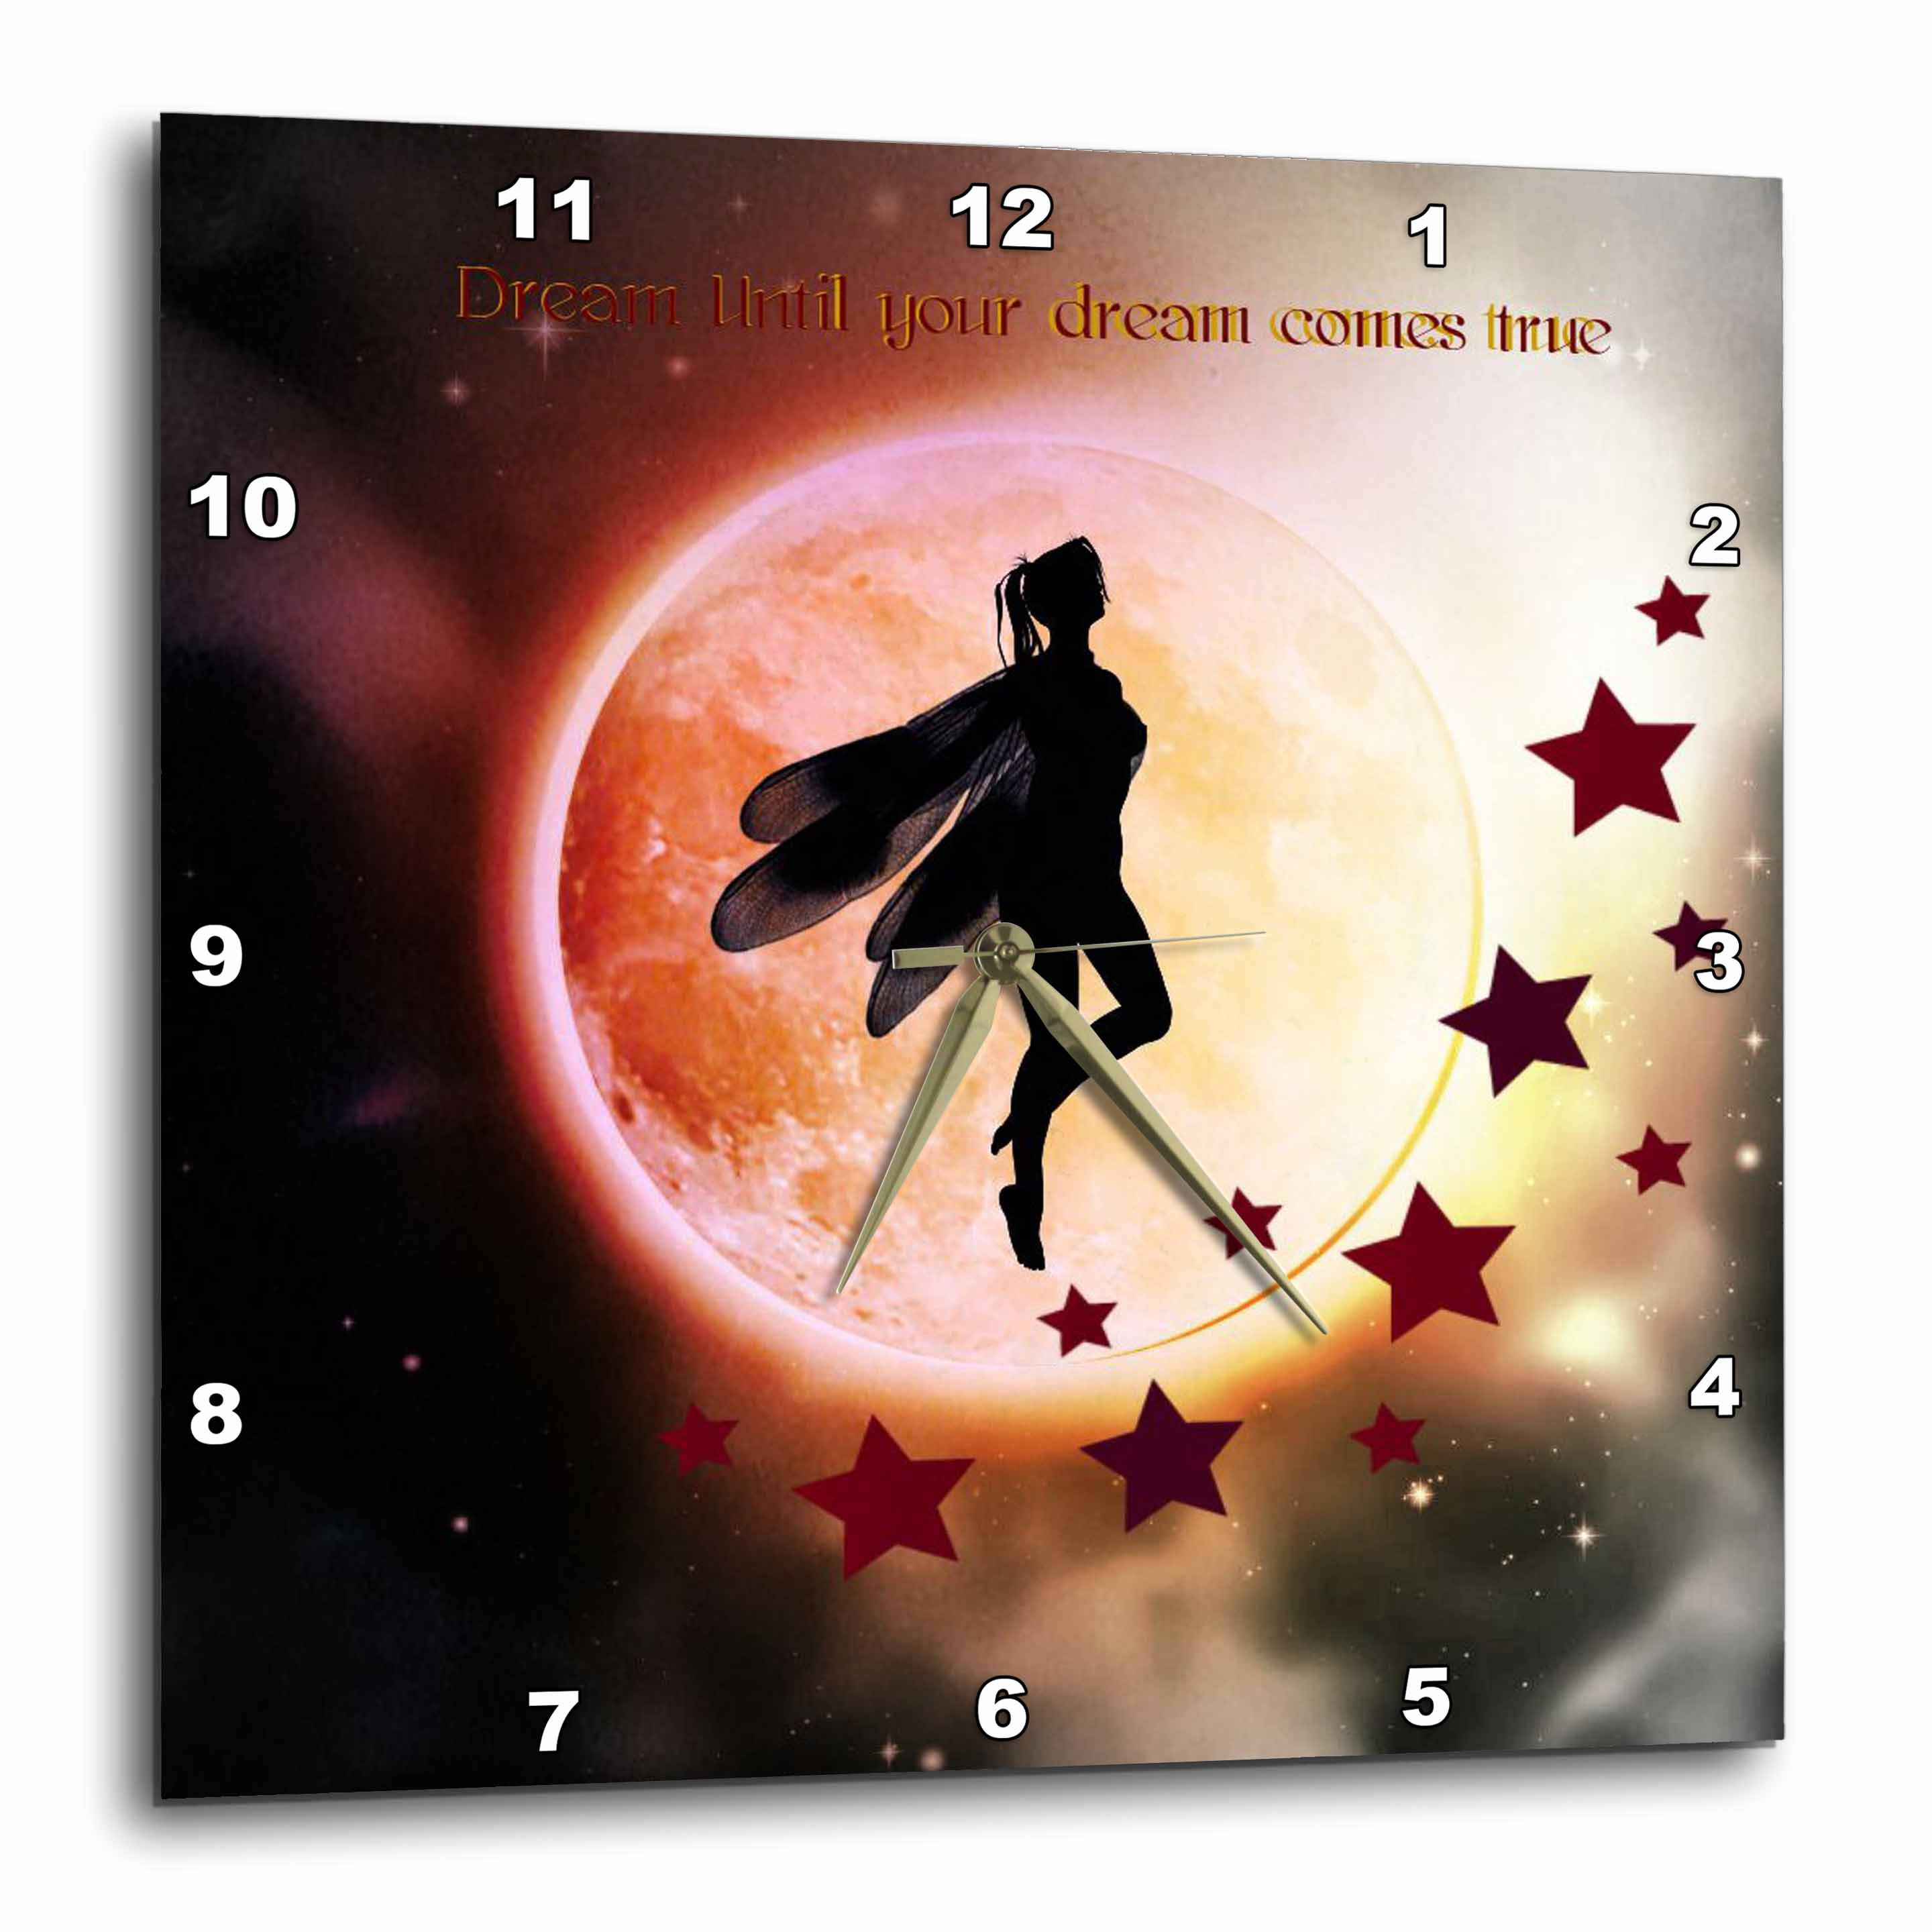 3dRose Dream Until Your Dream Comes True, Fairy Silhouette With Colored Moon, Wall Clock, 13 by 13-inch